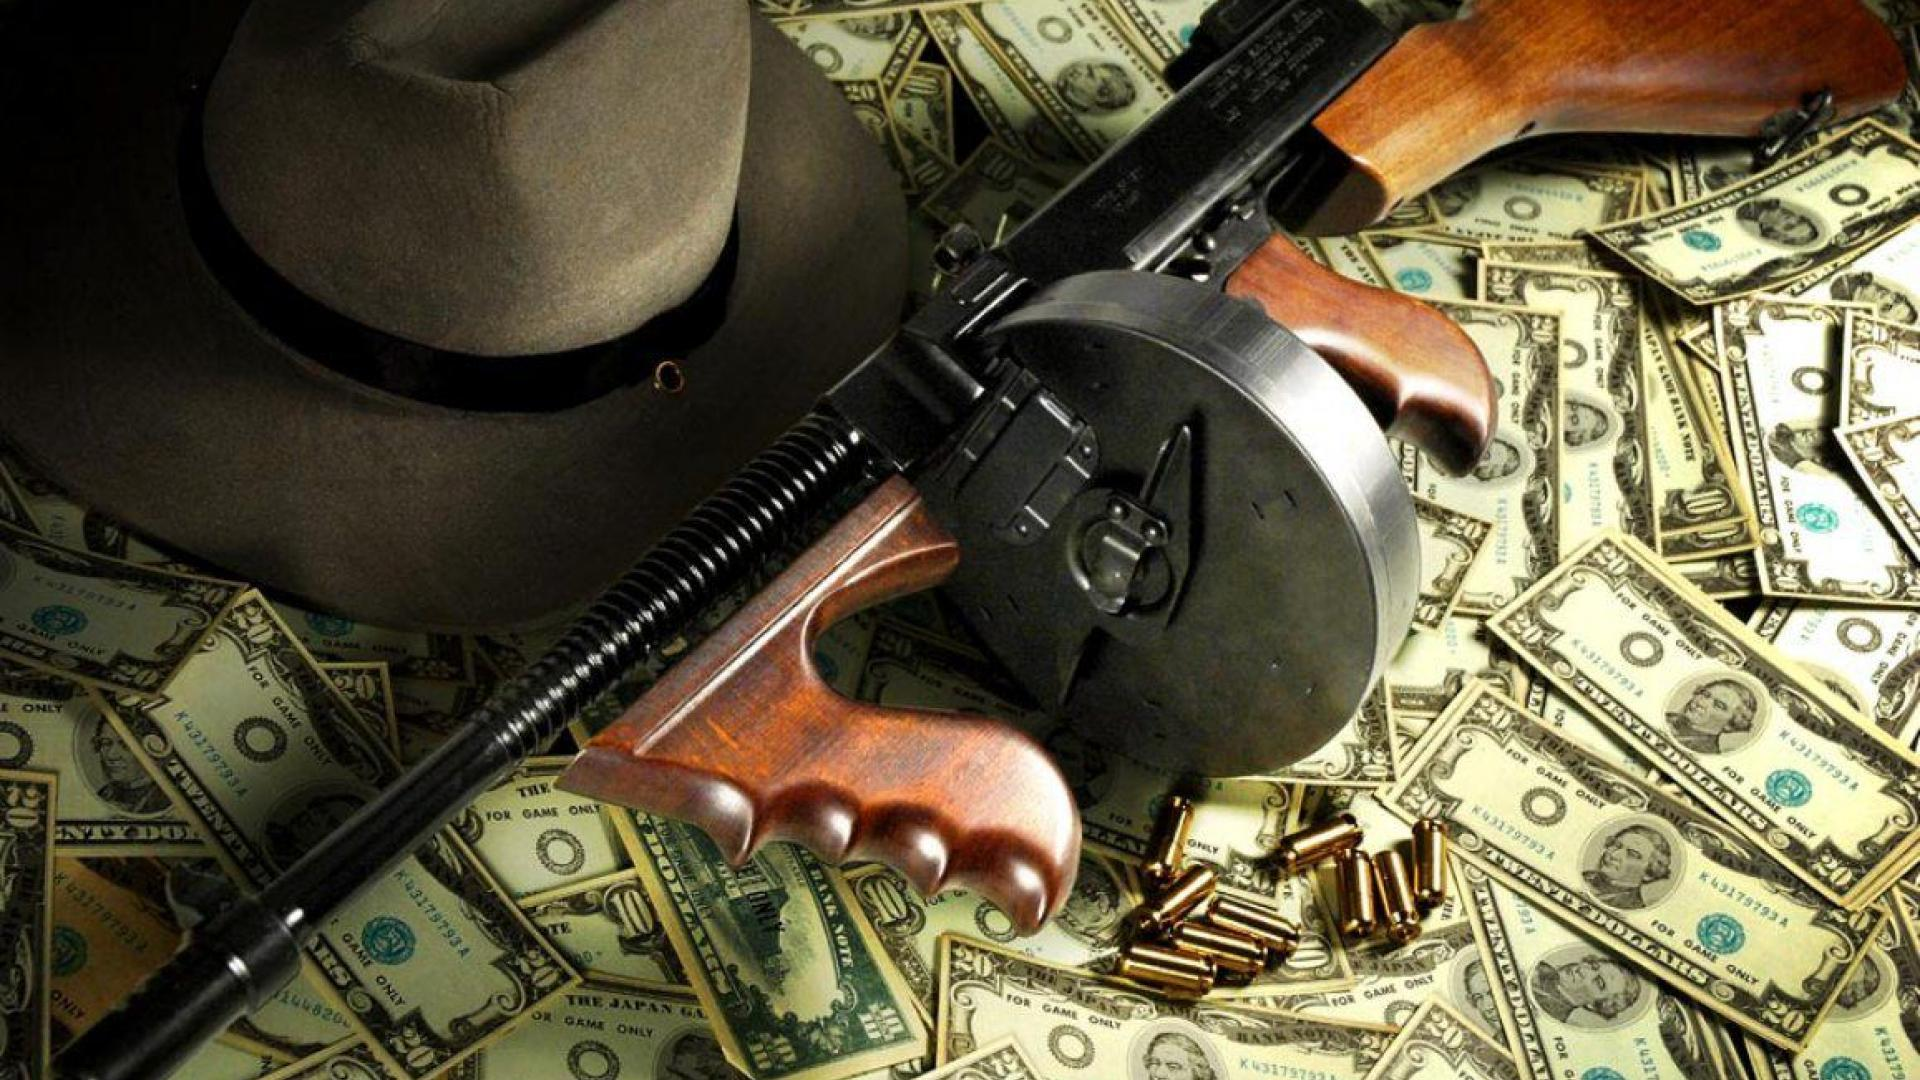 Gangsters With Guns Wallpapers Top Free Gangsters With Guns